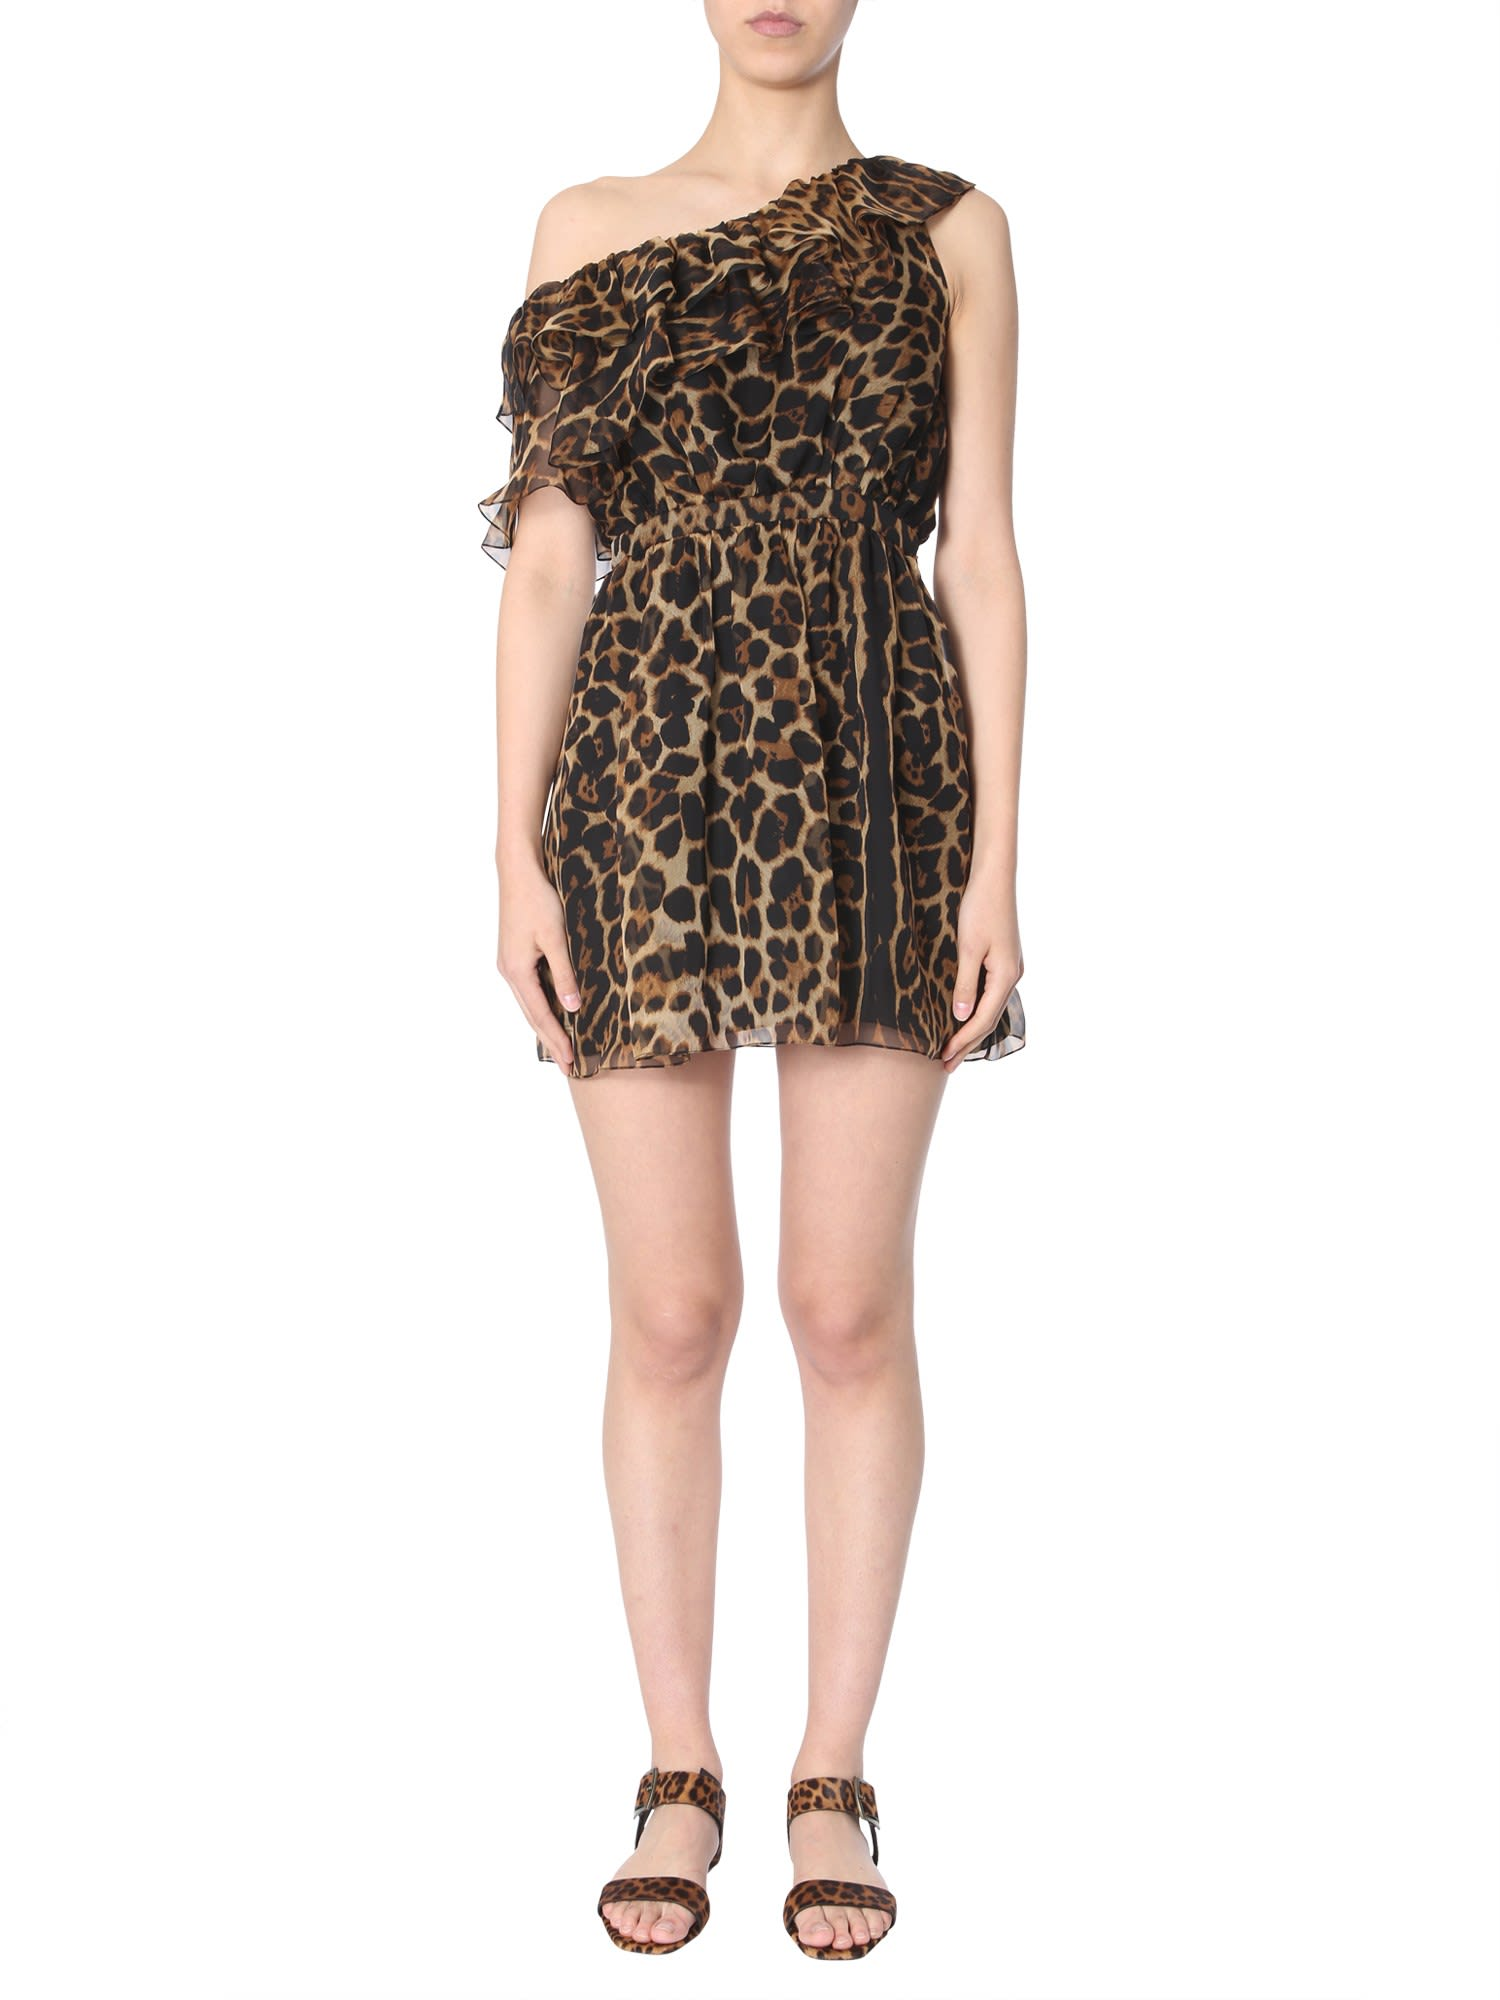 Saint Laurent Single Short Dress